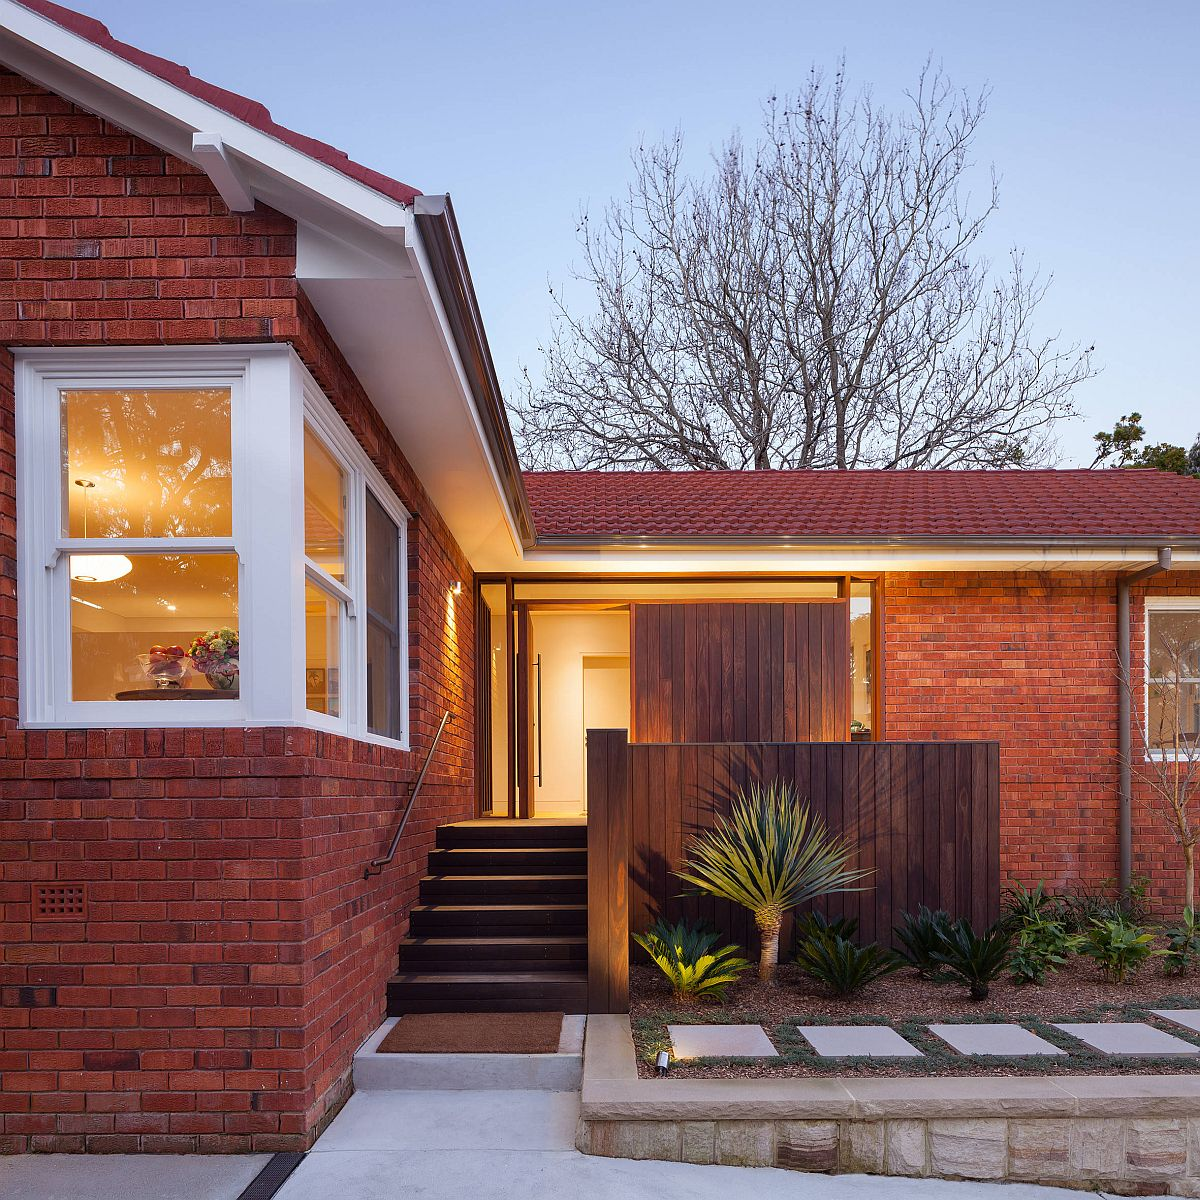 Classic brick walls give this home a comfortable redsheen while still keeping the facade modern